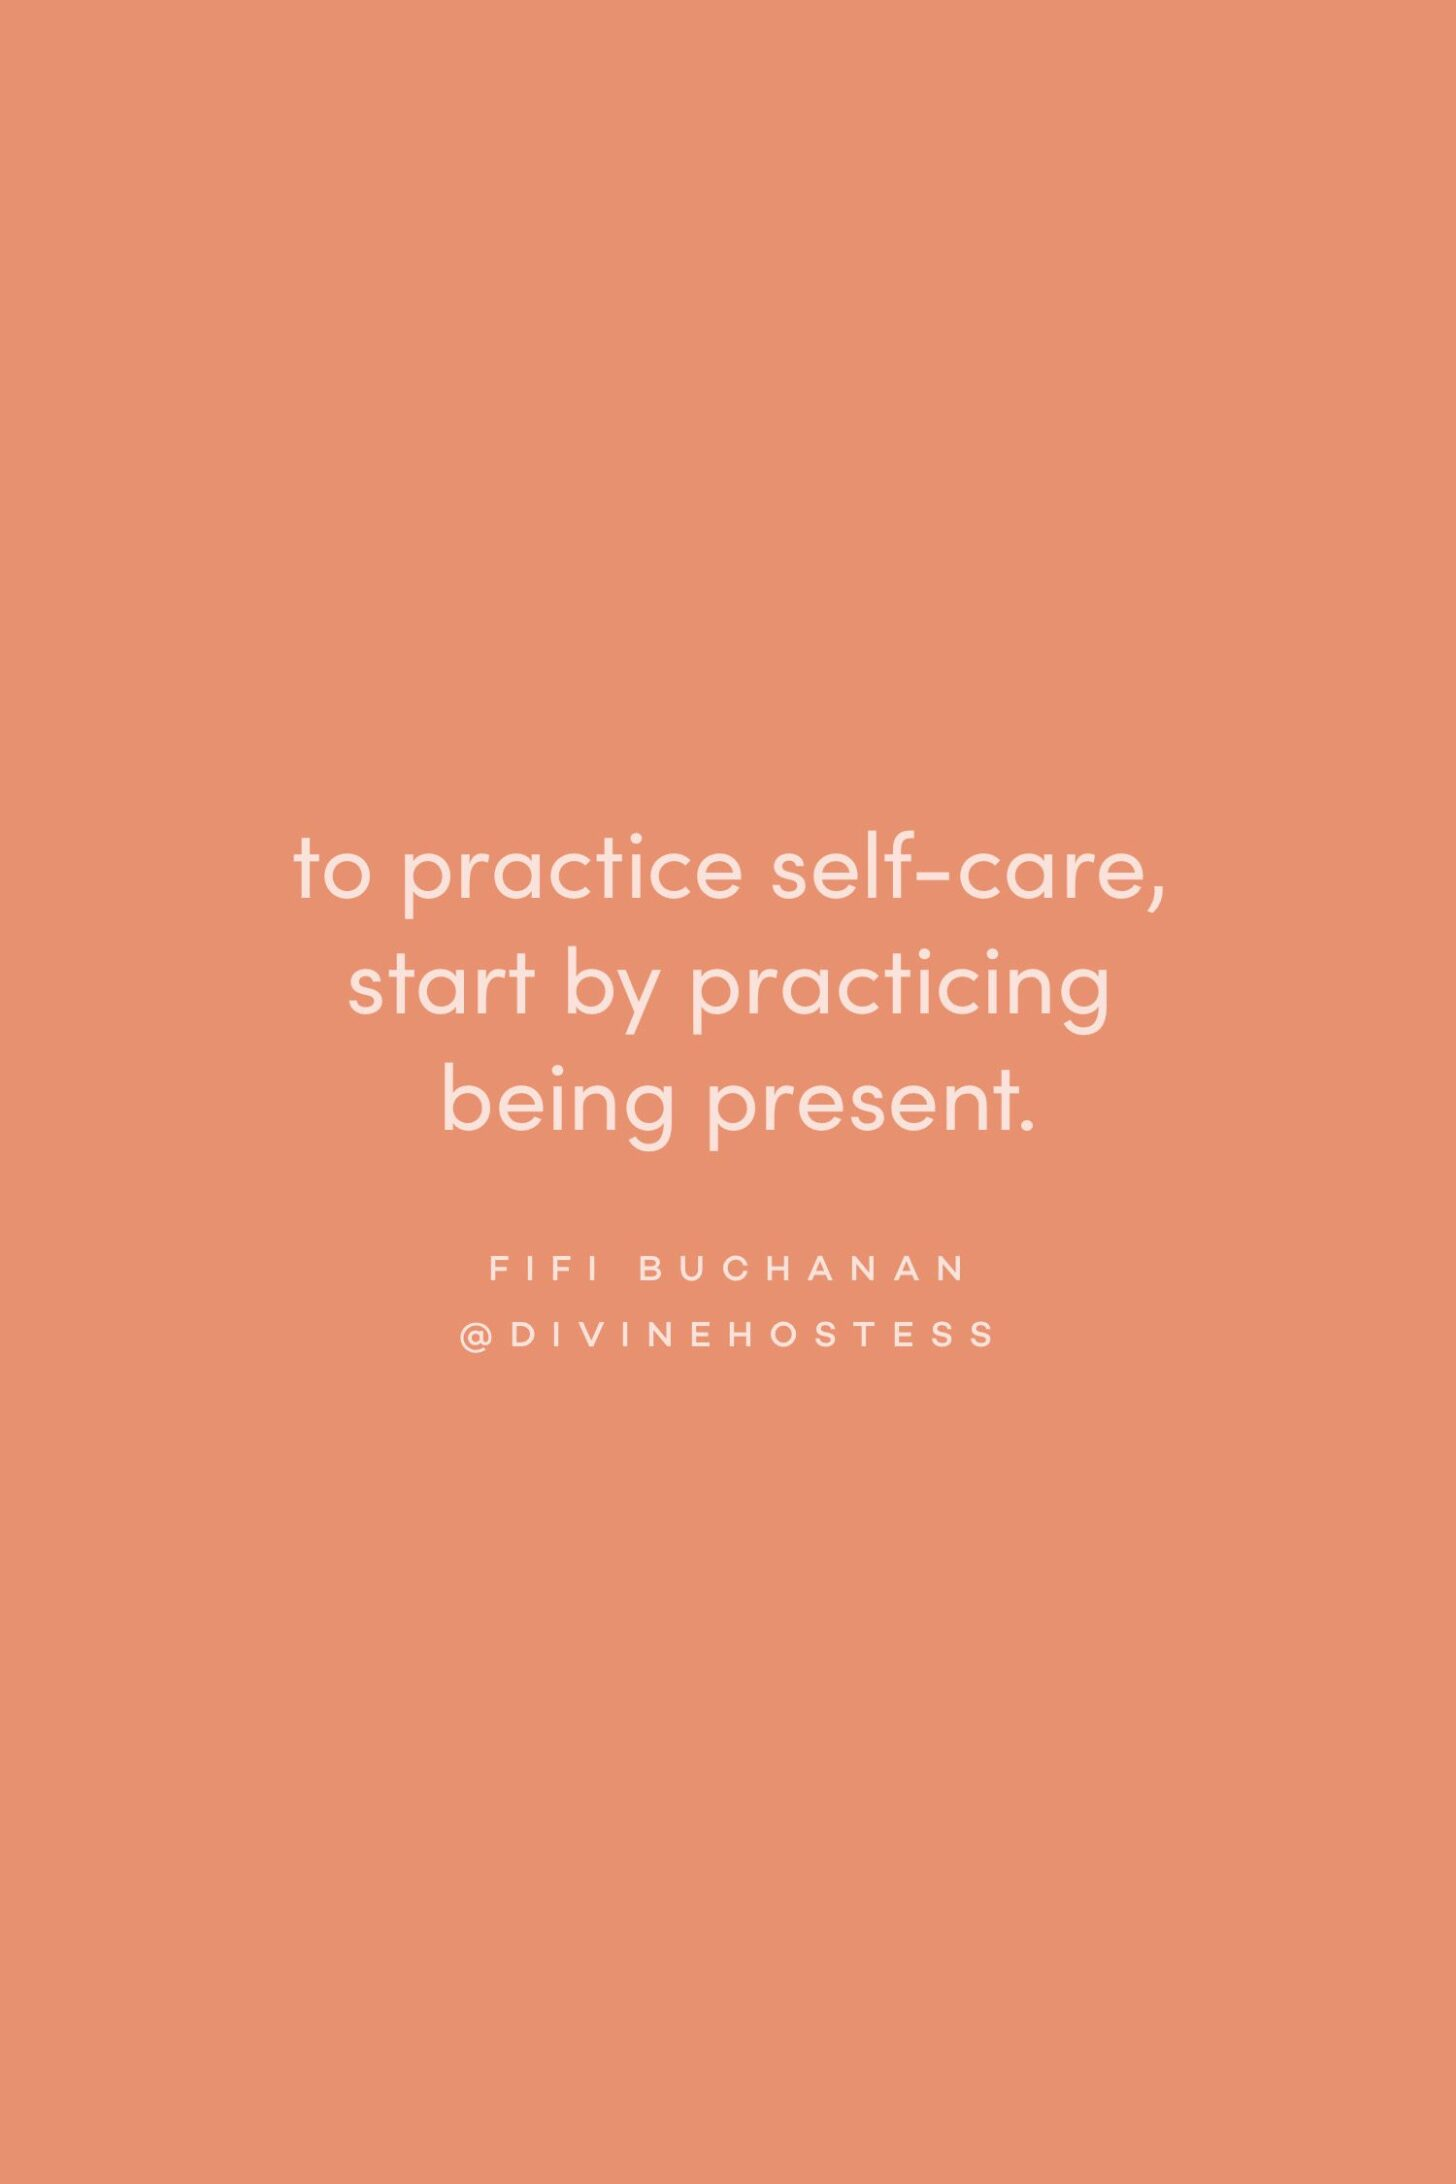 Quote on being present for self-care by Fifi Buchanan on the Feel Good Effect Podcast #realfoodwholelife #feelgoodeffectpodcast #positivityquote #motivationalquote #inspirationalquote #mindfulnessquote #selfcarequote #selfcompassionquote #selfworthquote #presencequote